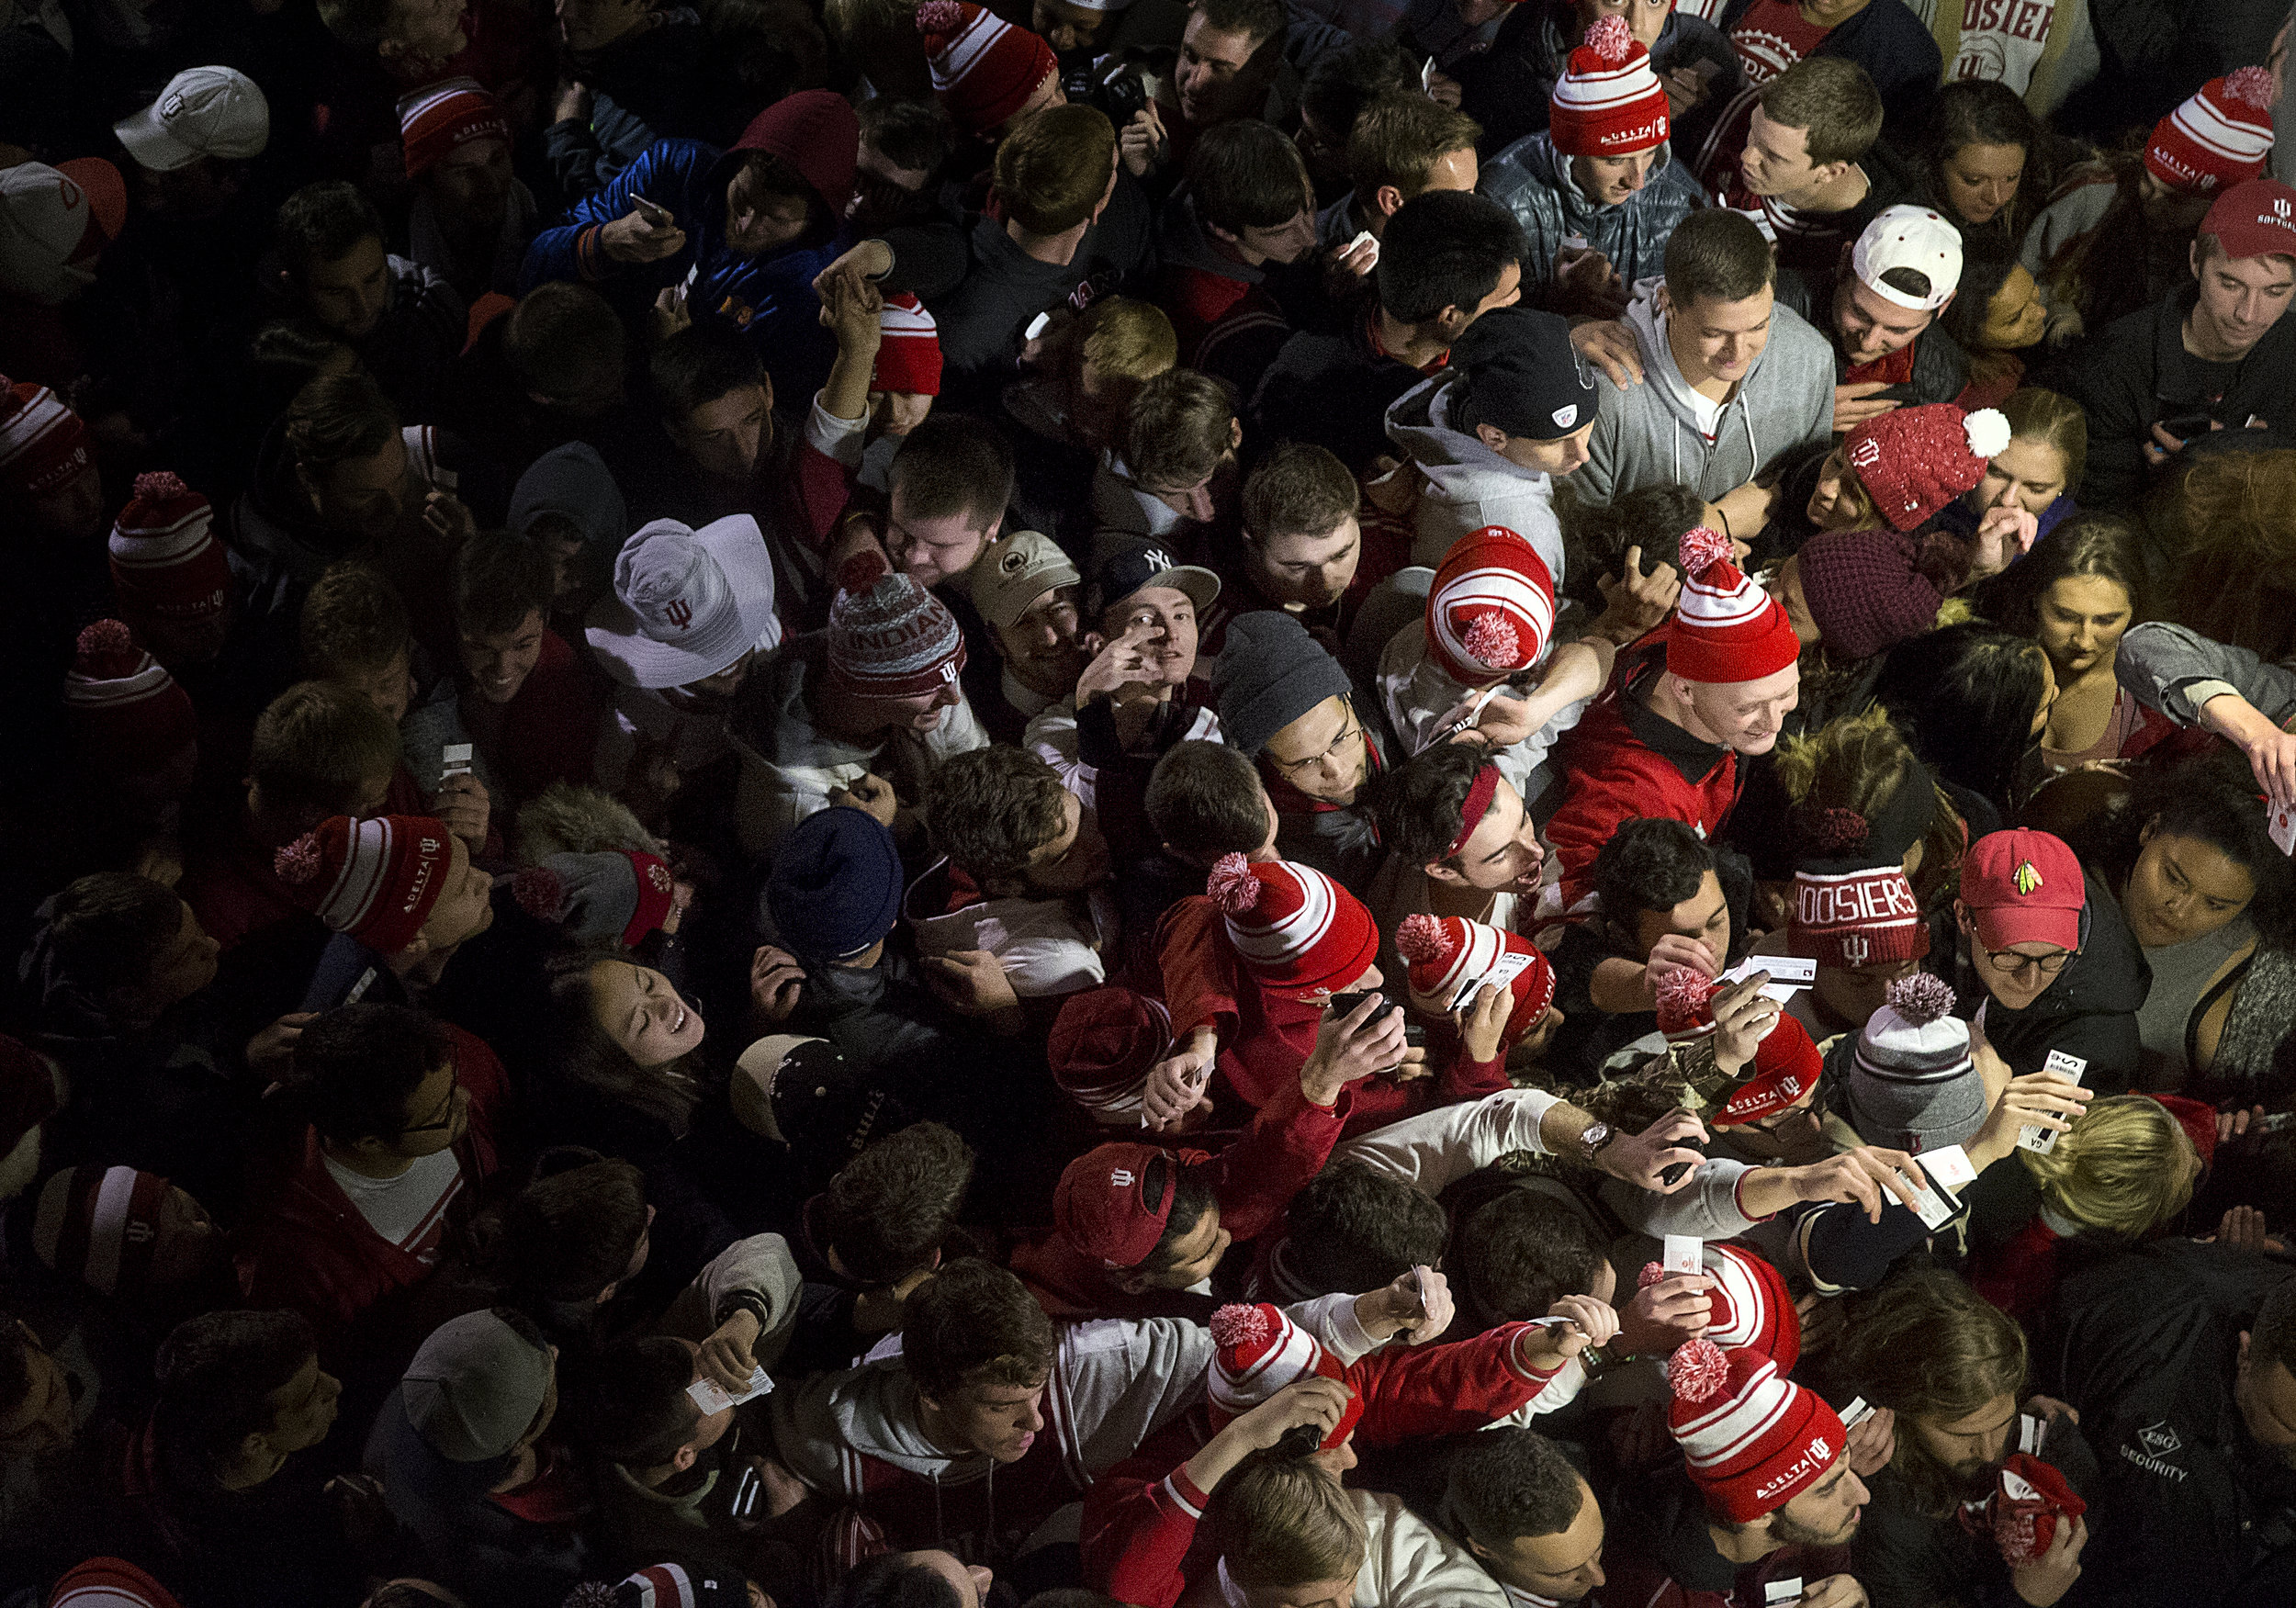 Members of the student section crowd the entrance before the game between the Indiana Hoosiers and the North Carolina Tar Heels at Assembly Hall, Bloomington, Ind., Wednesday, Nov. 30, 2016.